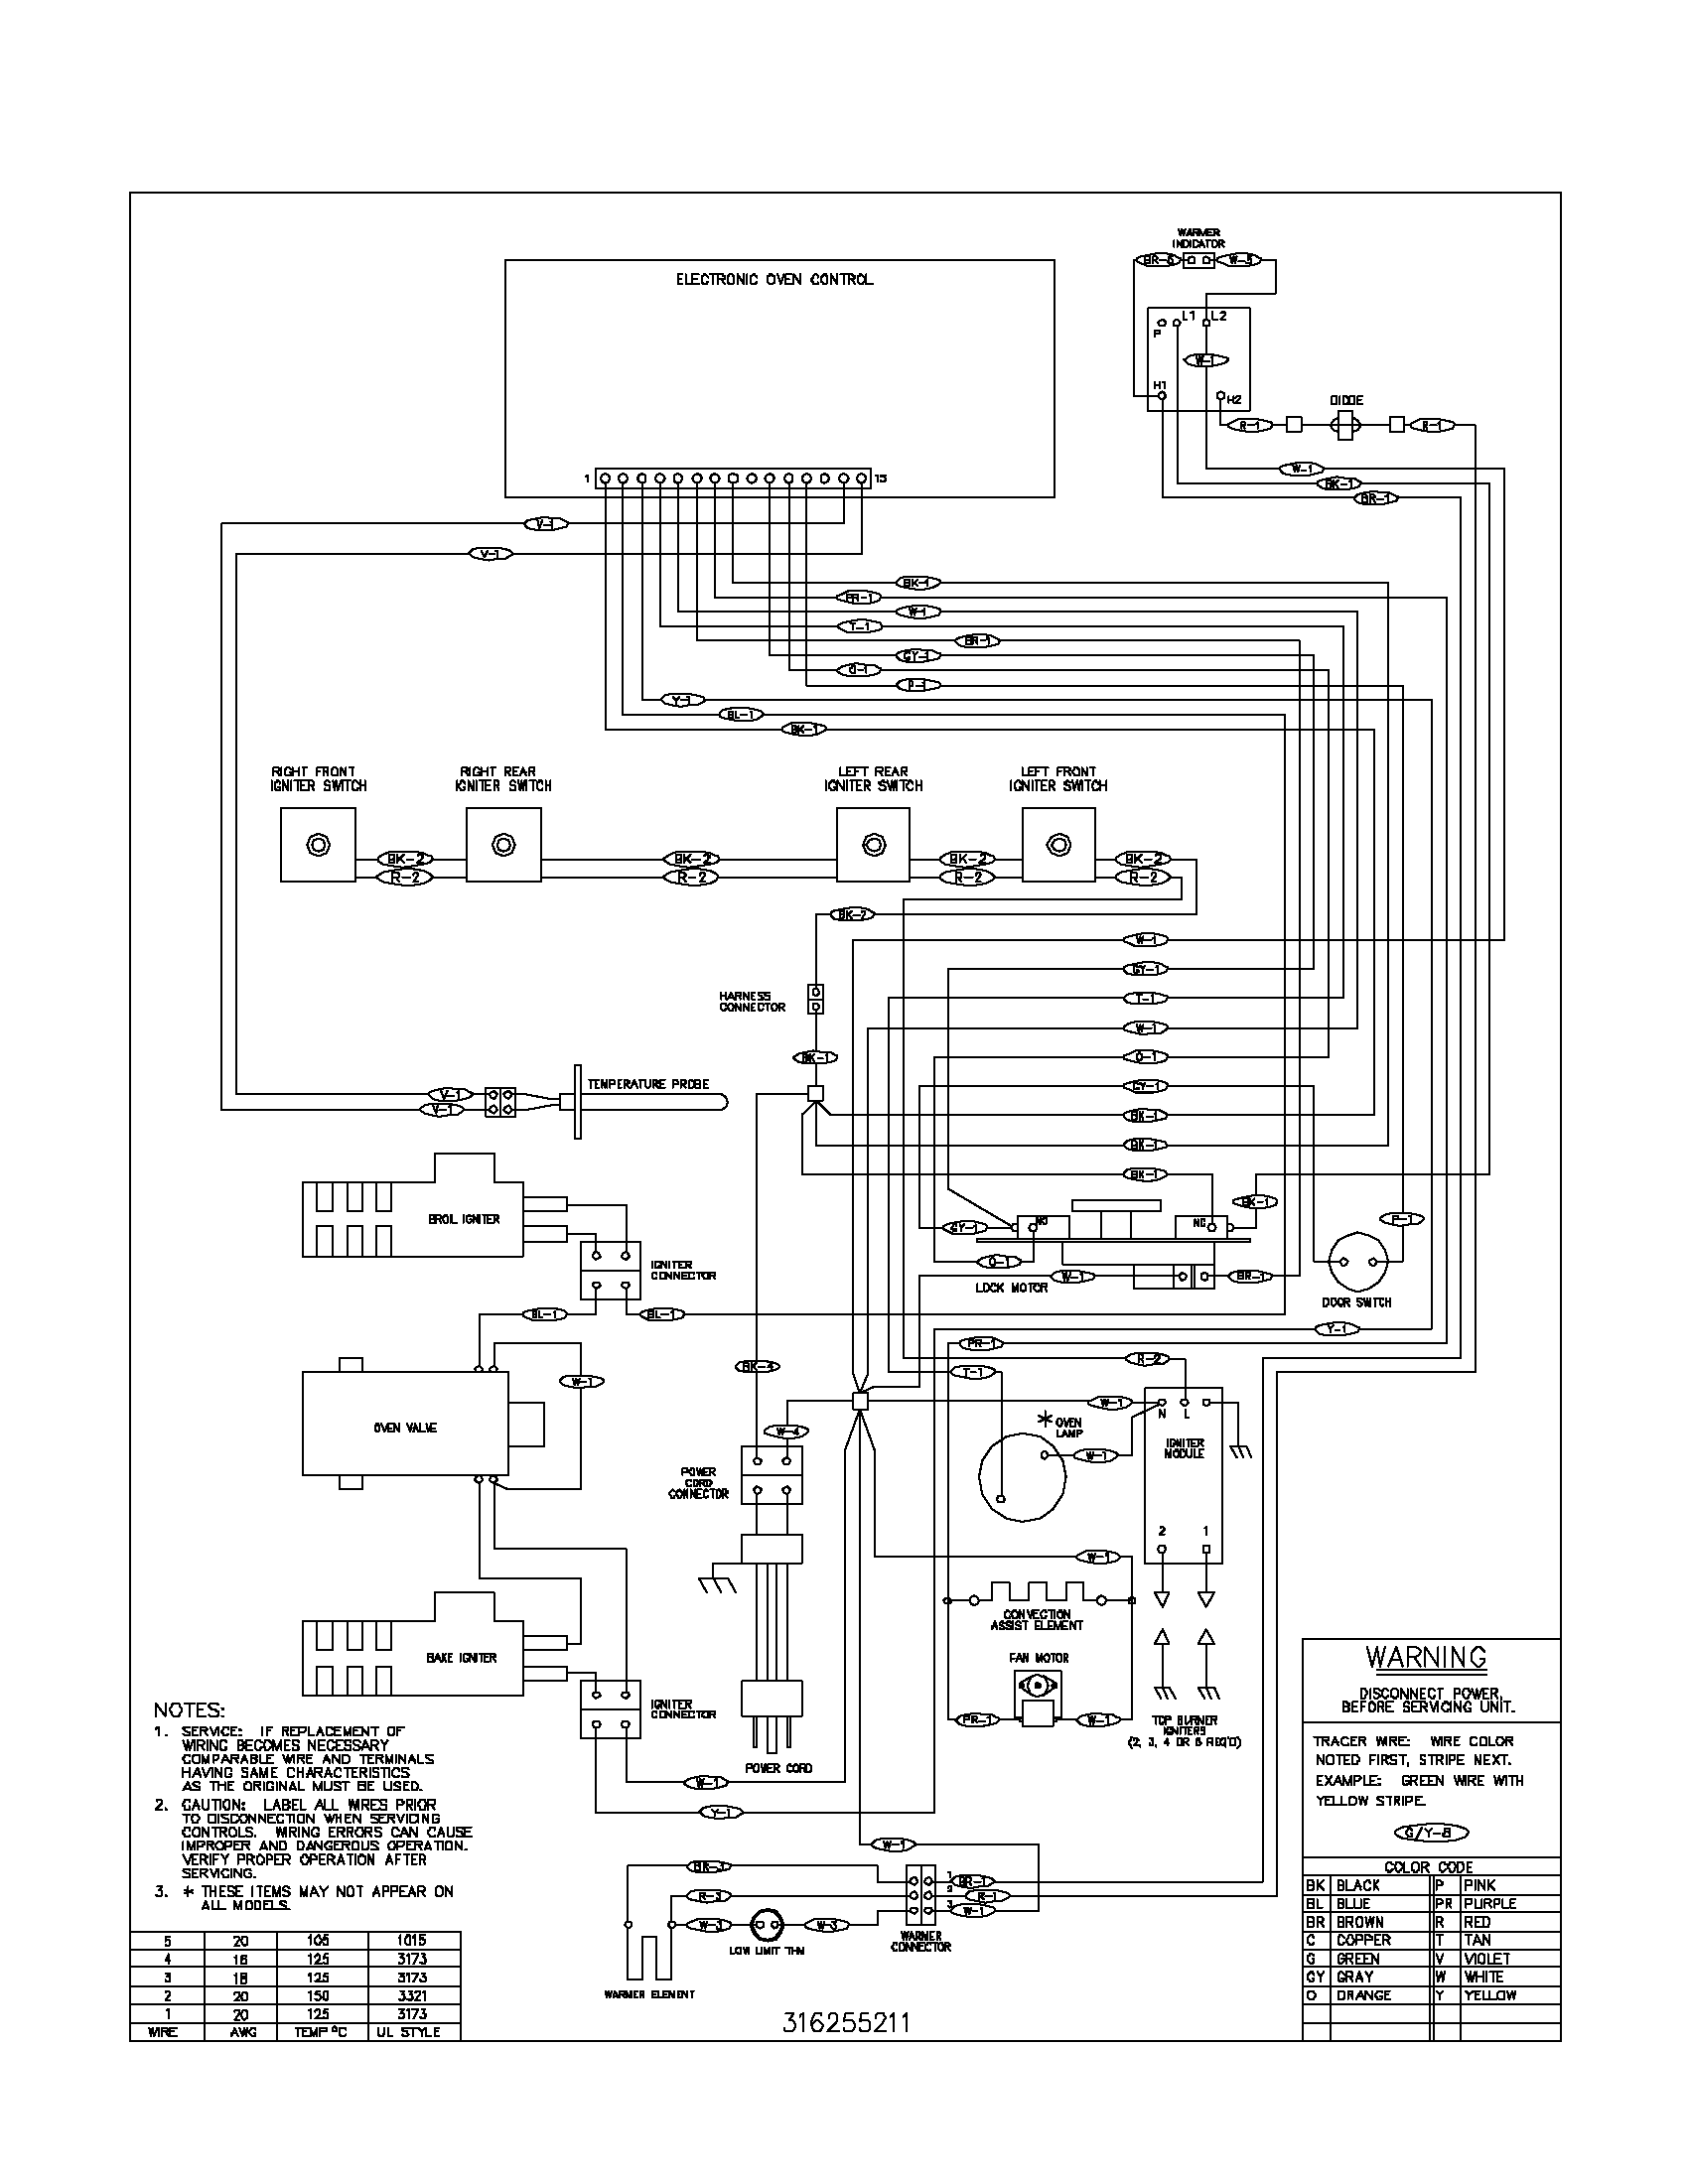 wiring diagram parts frigidaire dryer wiring diagram conair hair dryer wiring diagram cold room control panel wiring diagram at gsmx.co